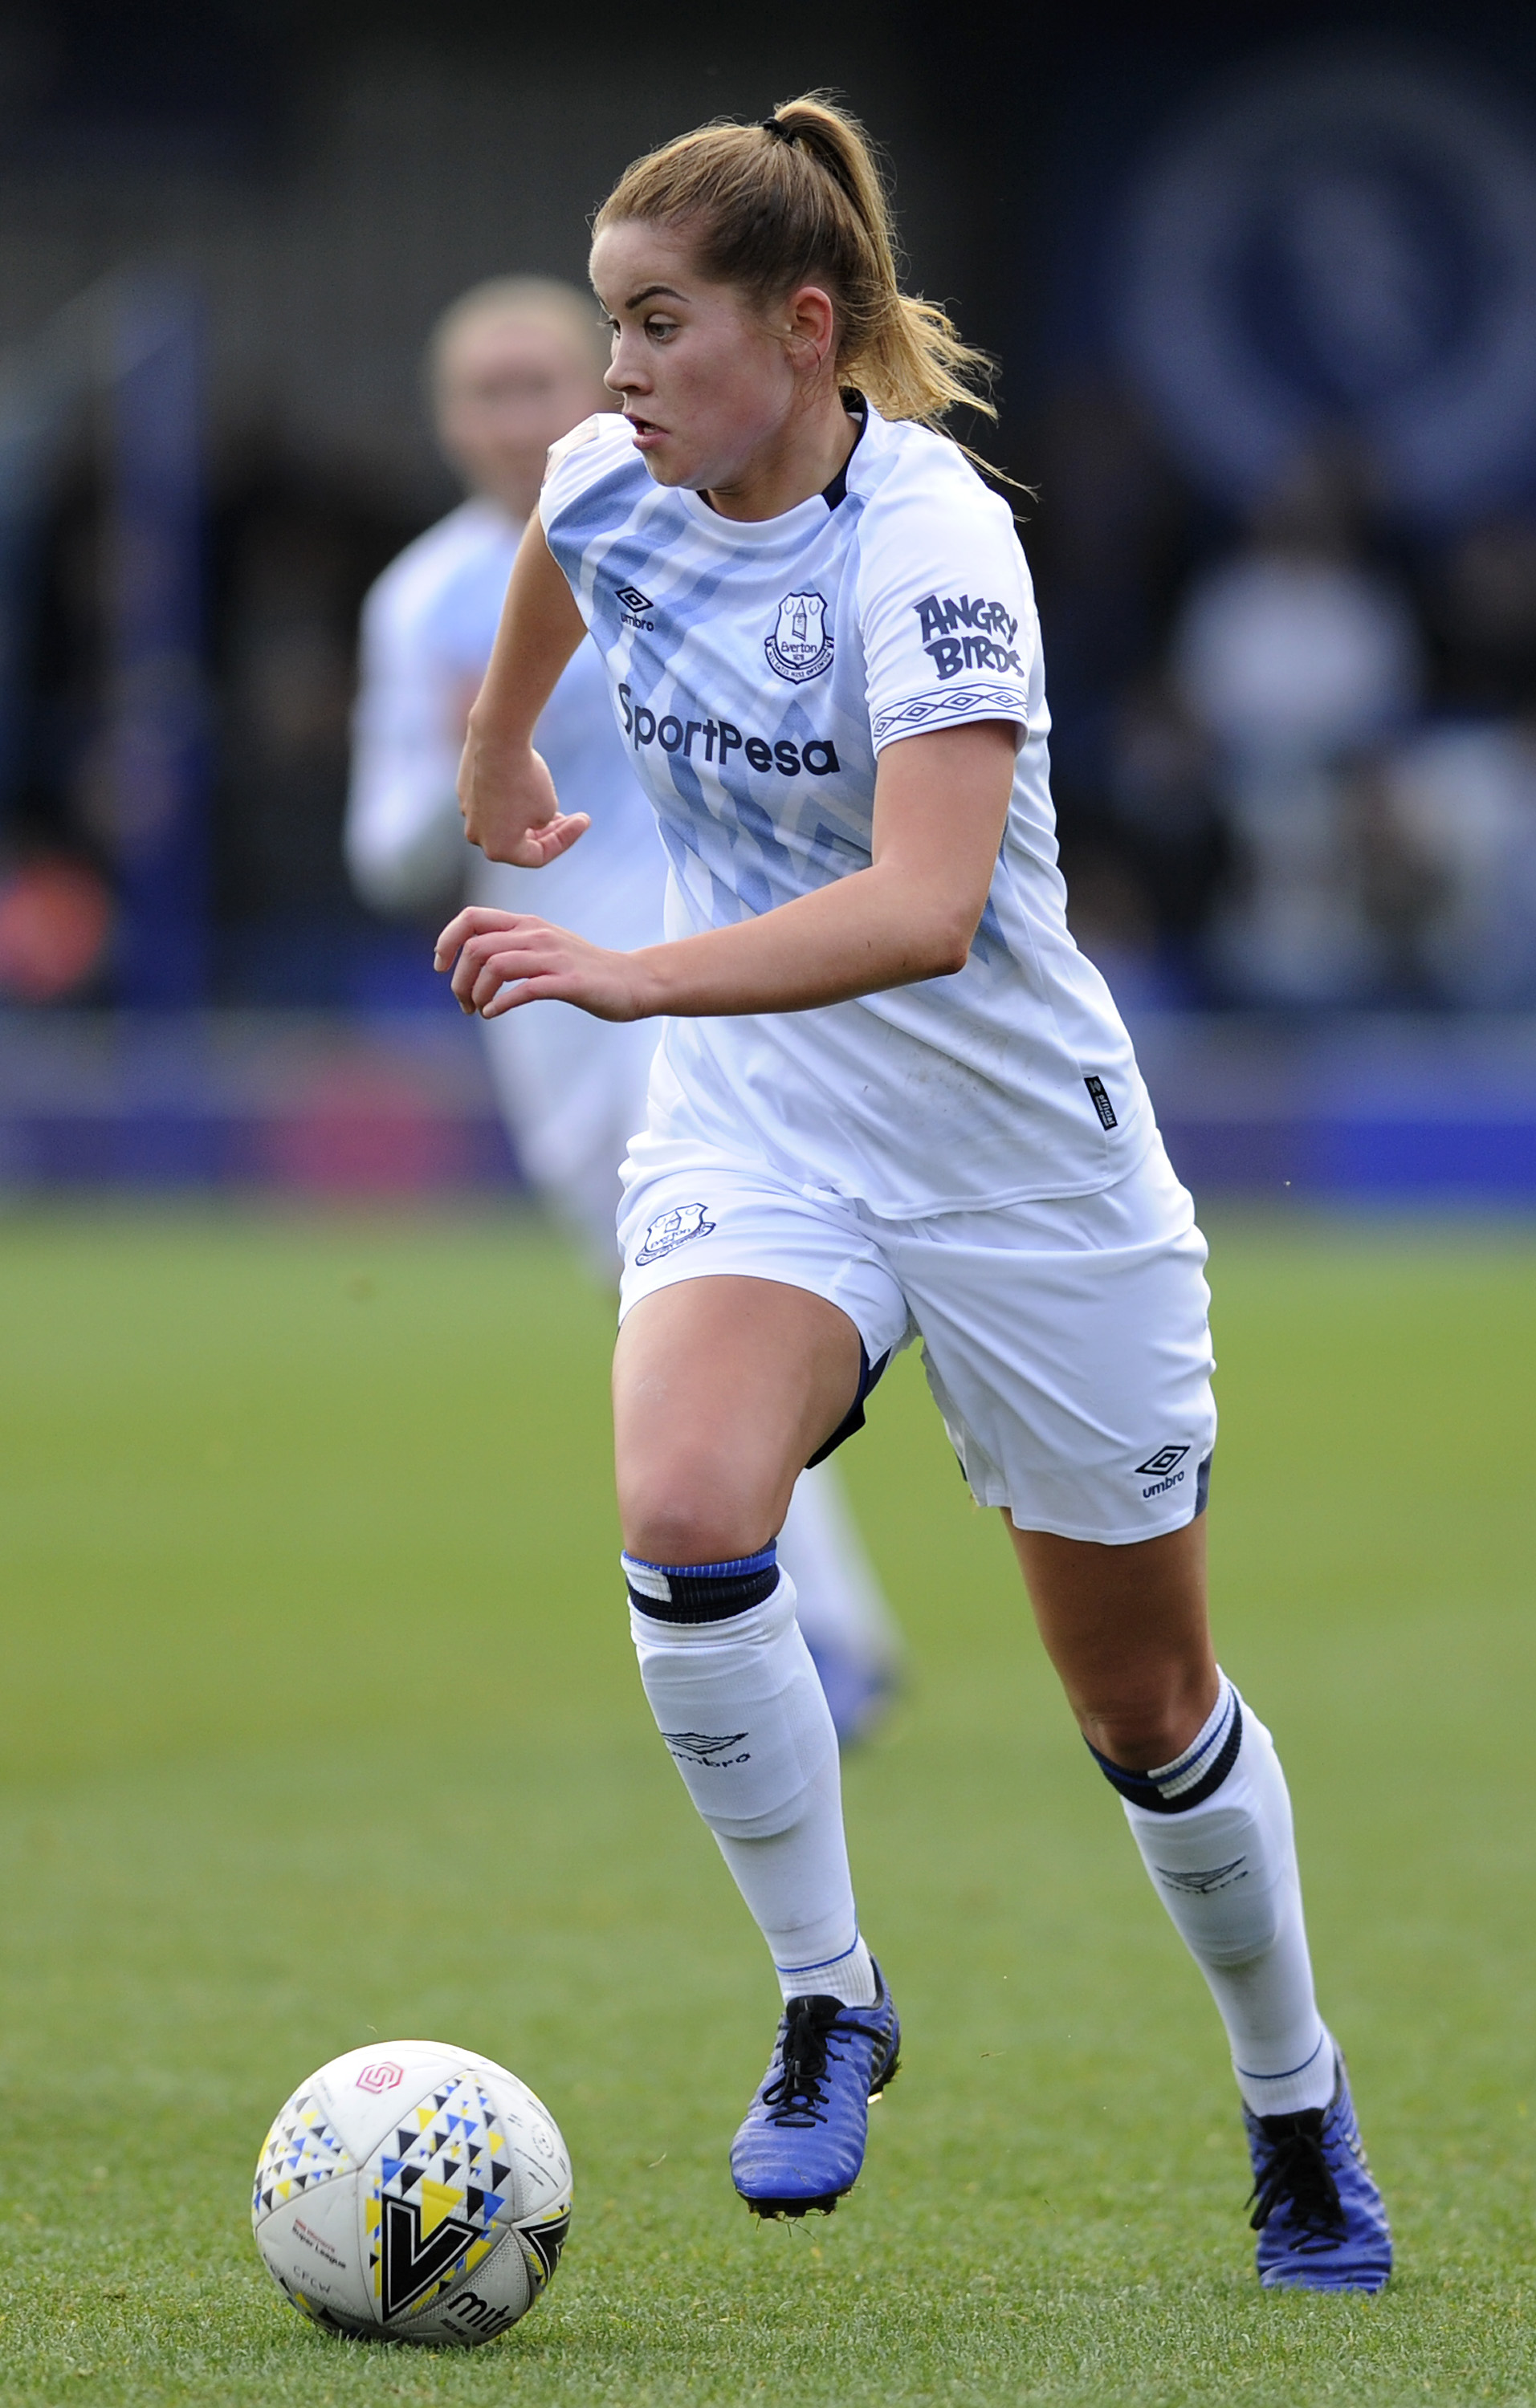 Everton Ladies Lose to Bristol City Despite Valiant Effort